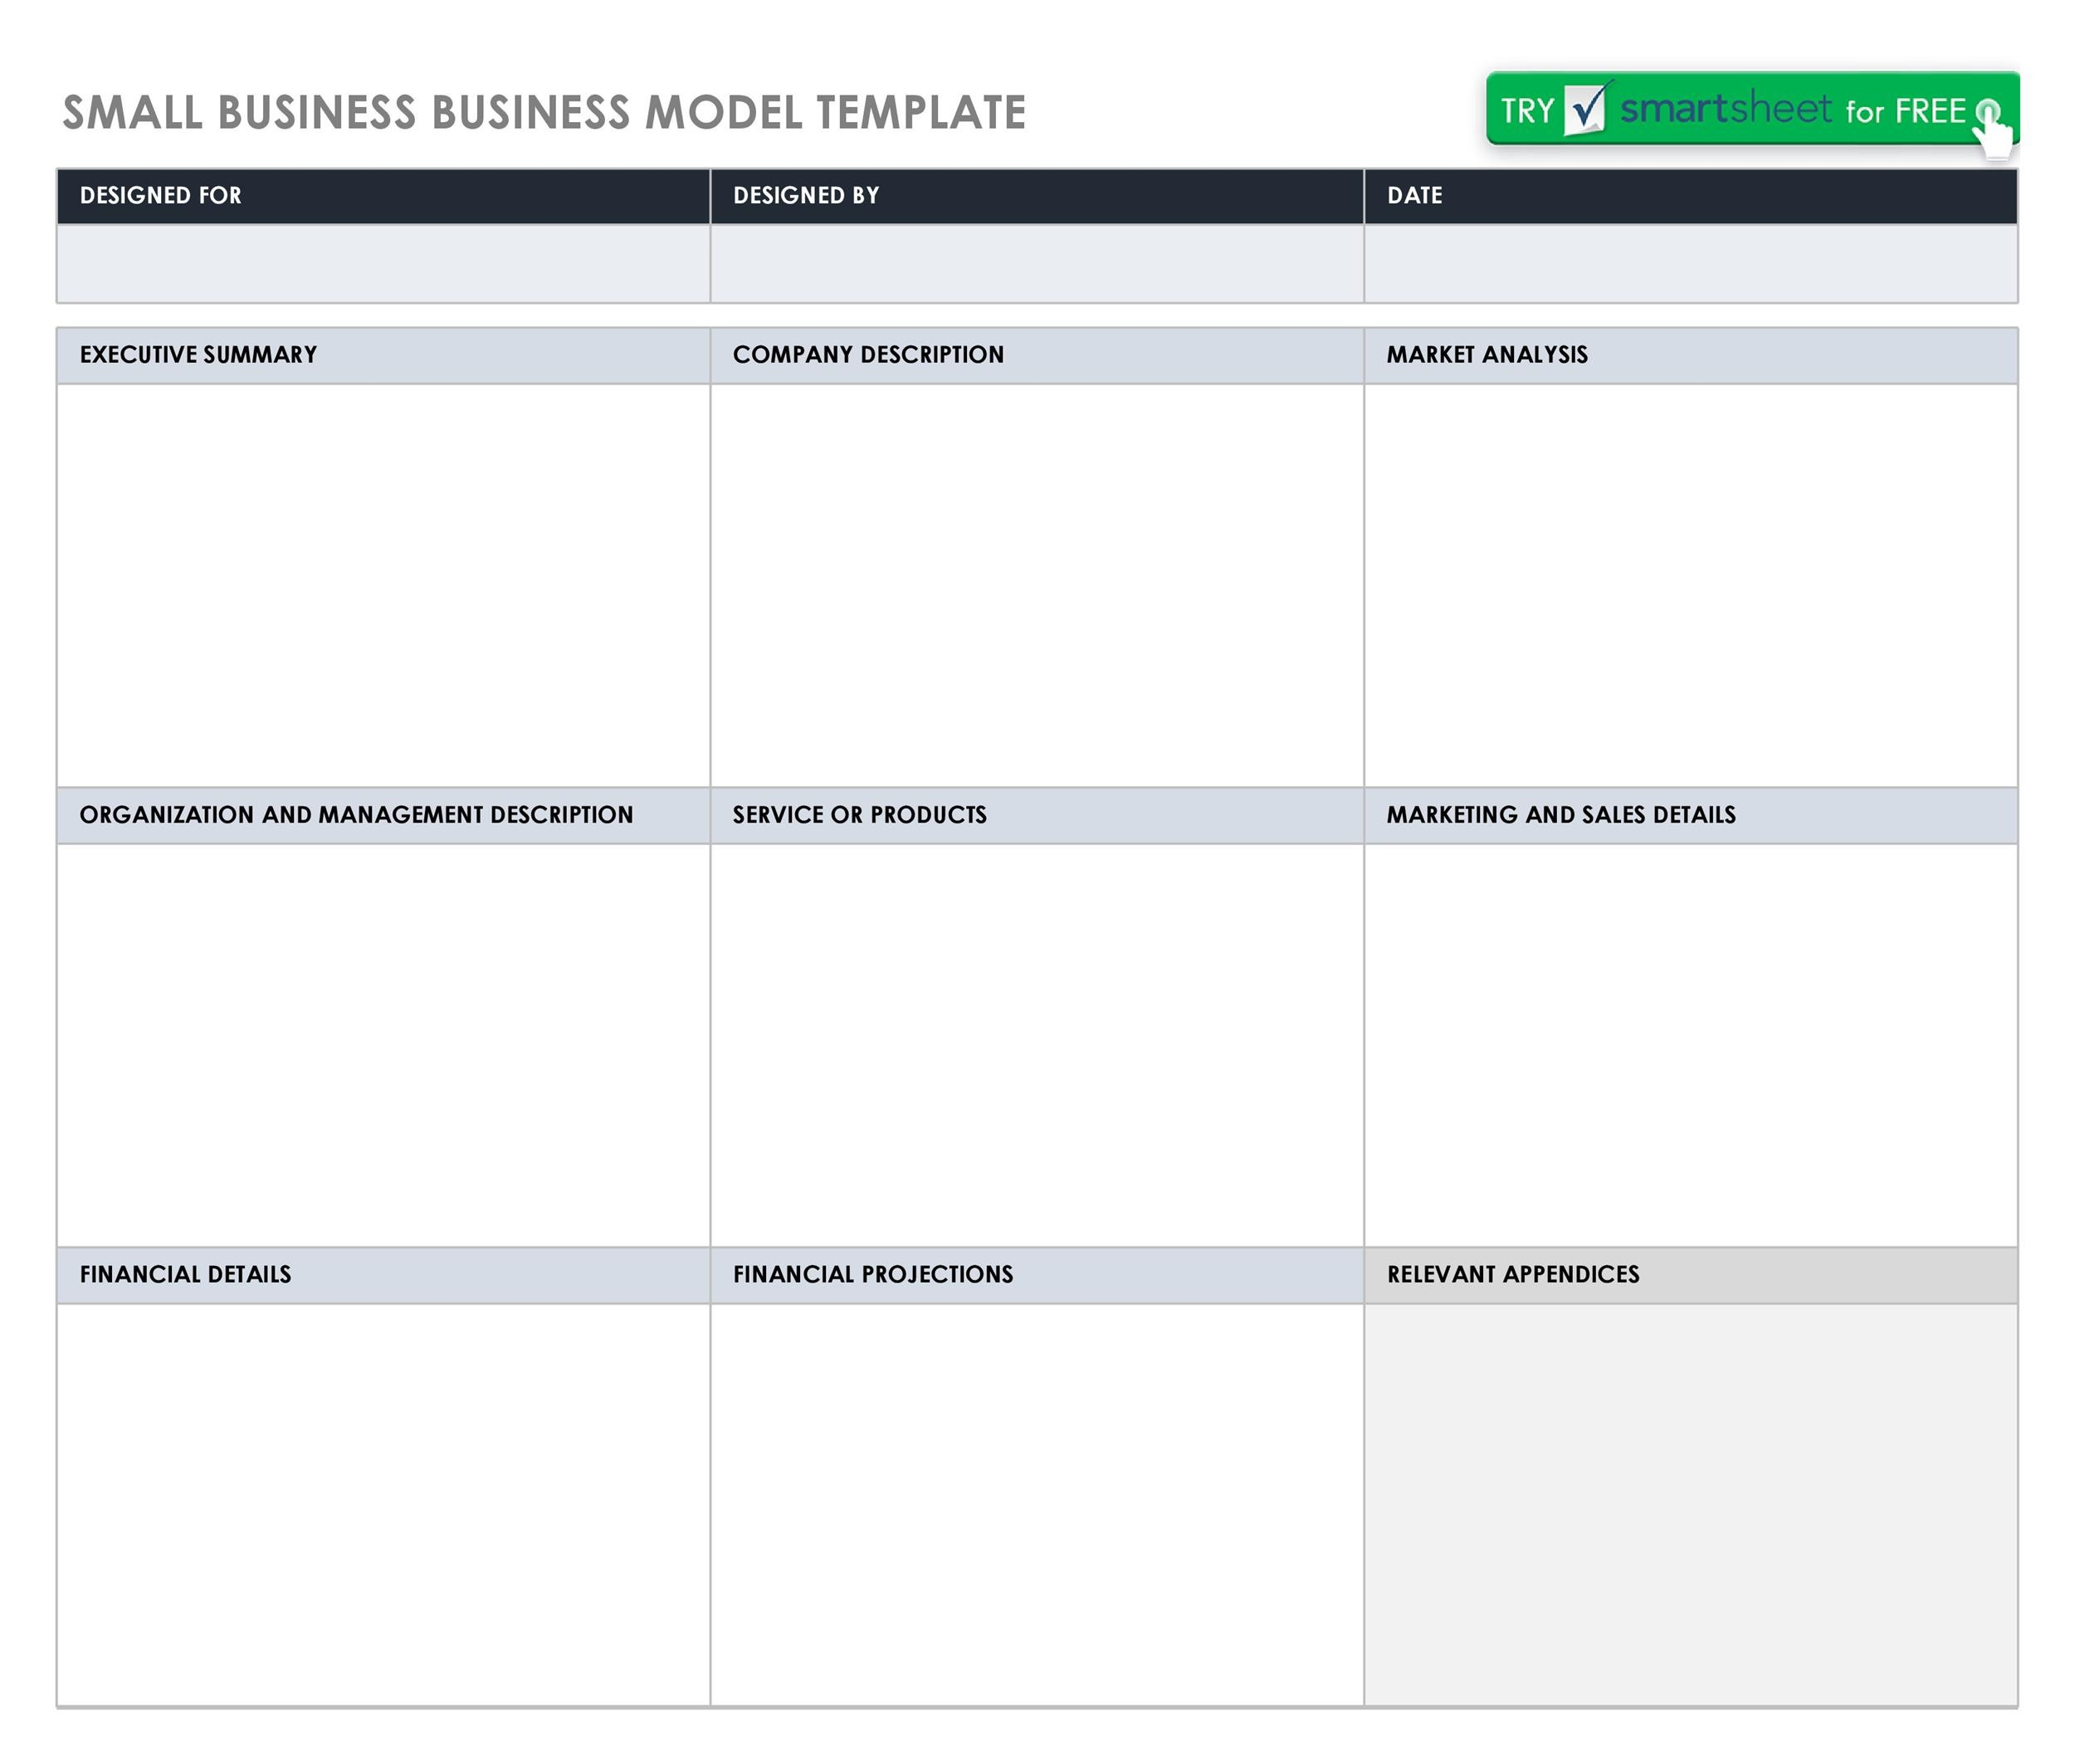 Free business model template 09